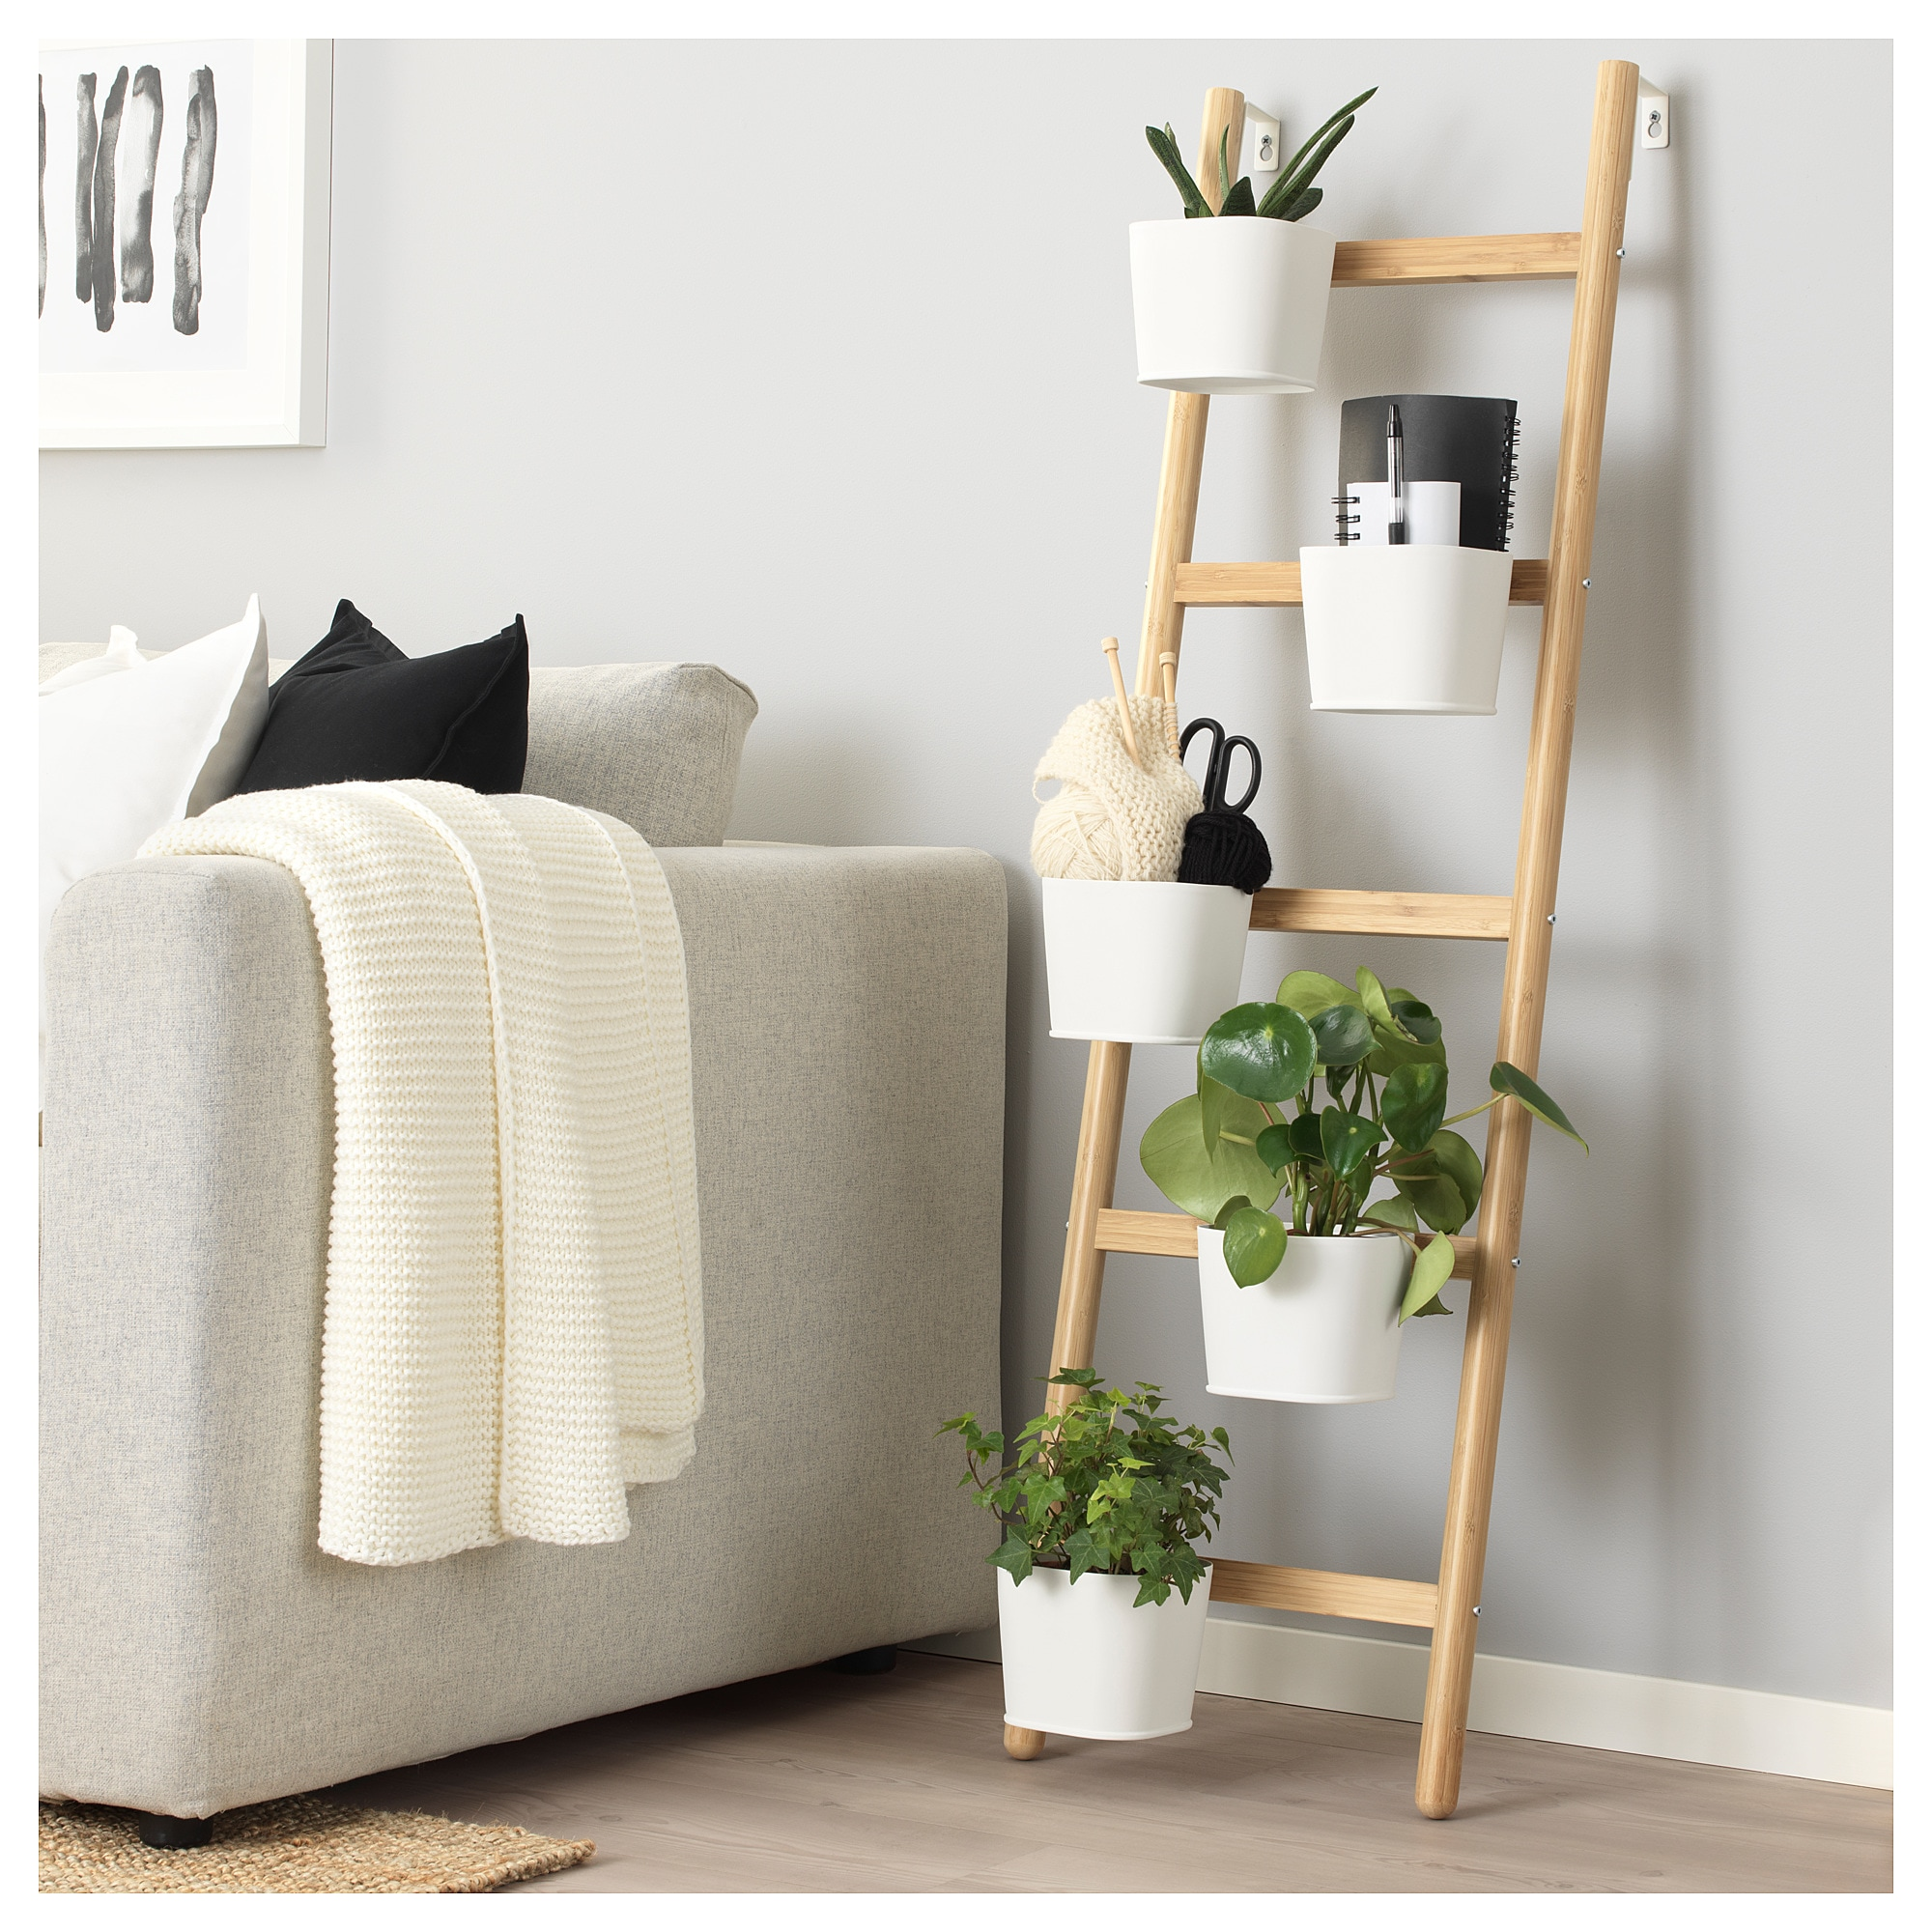 SATSUMAS Plant stand with 5 plant pots, bamboo, white is part of Living Room Plants Bamboo - A decorative ladder plant stand allows you to grow several plants together vertically   perfect if you like plants but live in a small space  A plant stand makes it possible to decorate with plants everywhere in the home